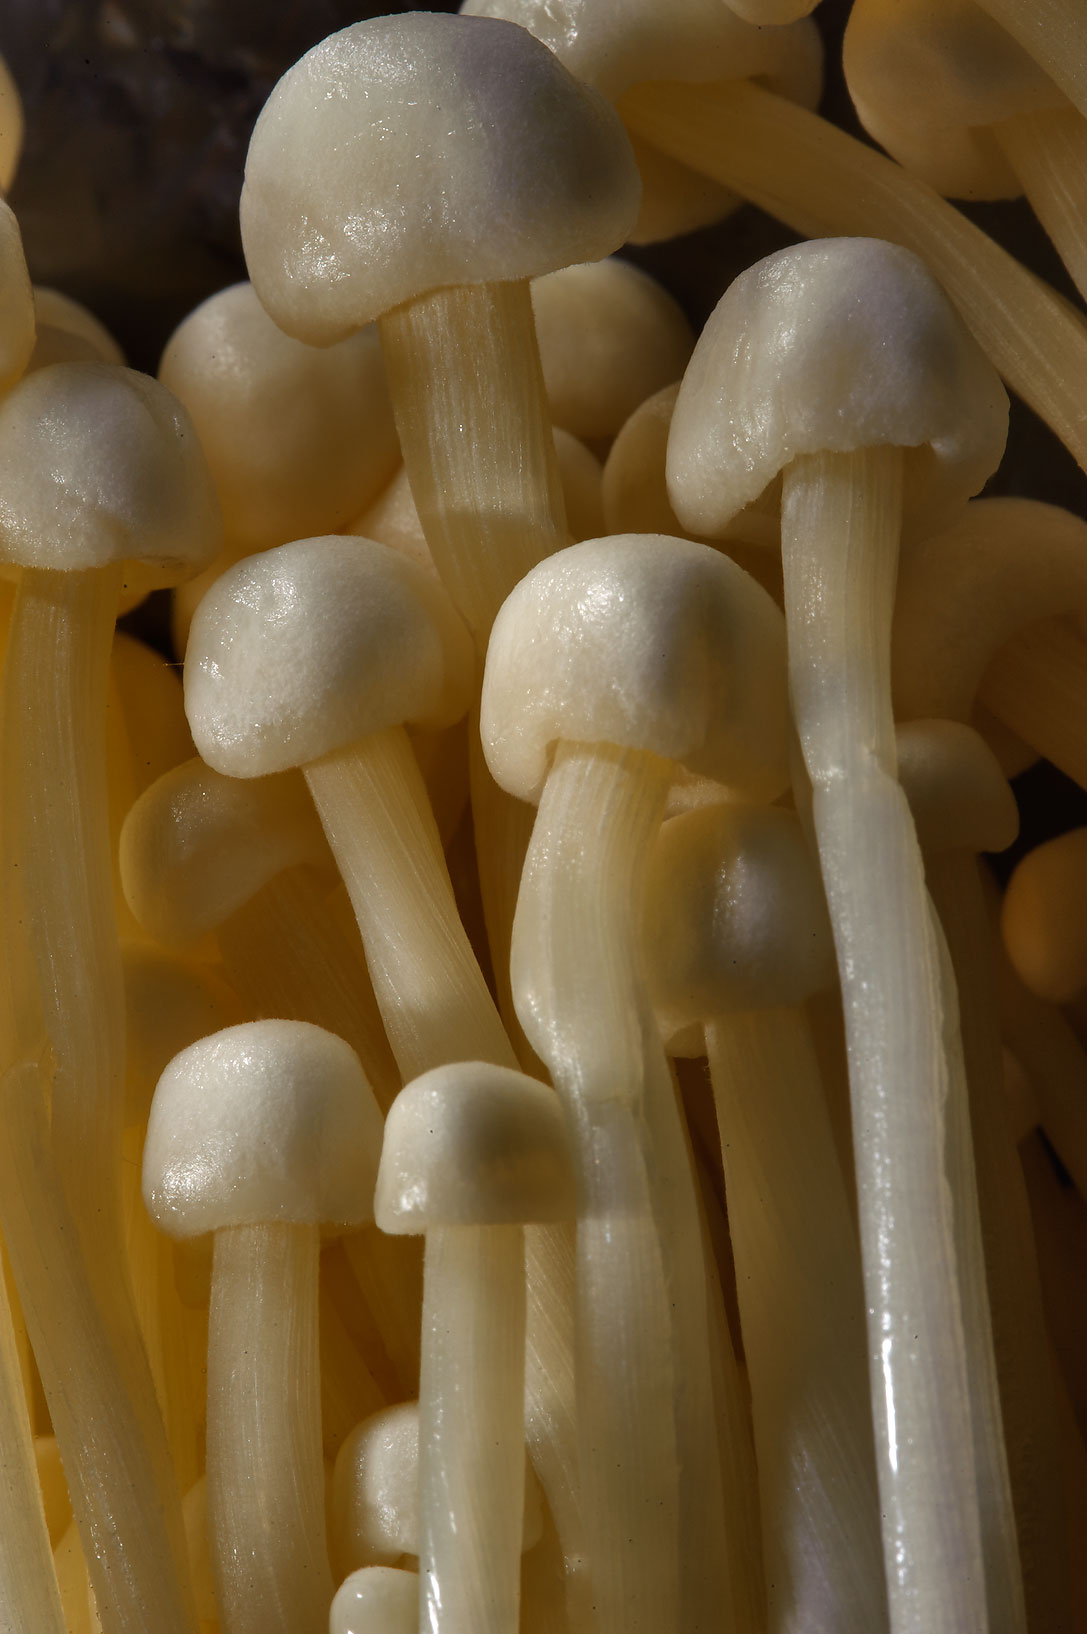 Close up of Enokitake mushrooms from City Center Carrefour supermarket. Doha, Qatar